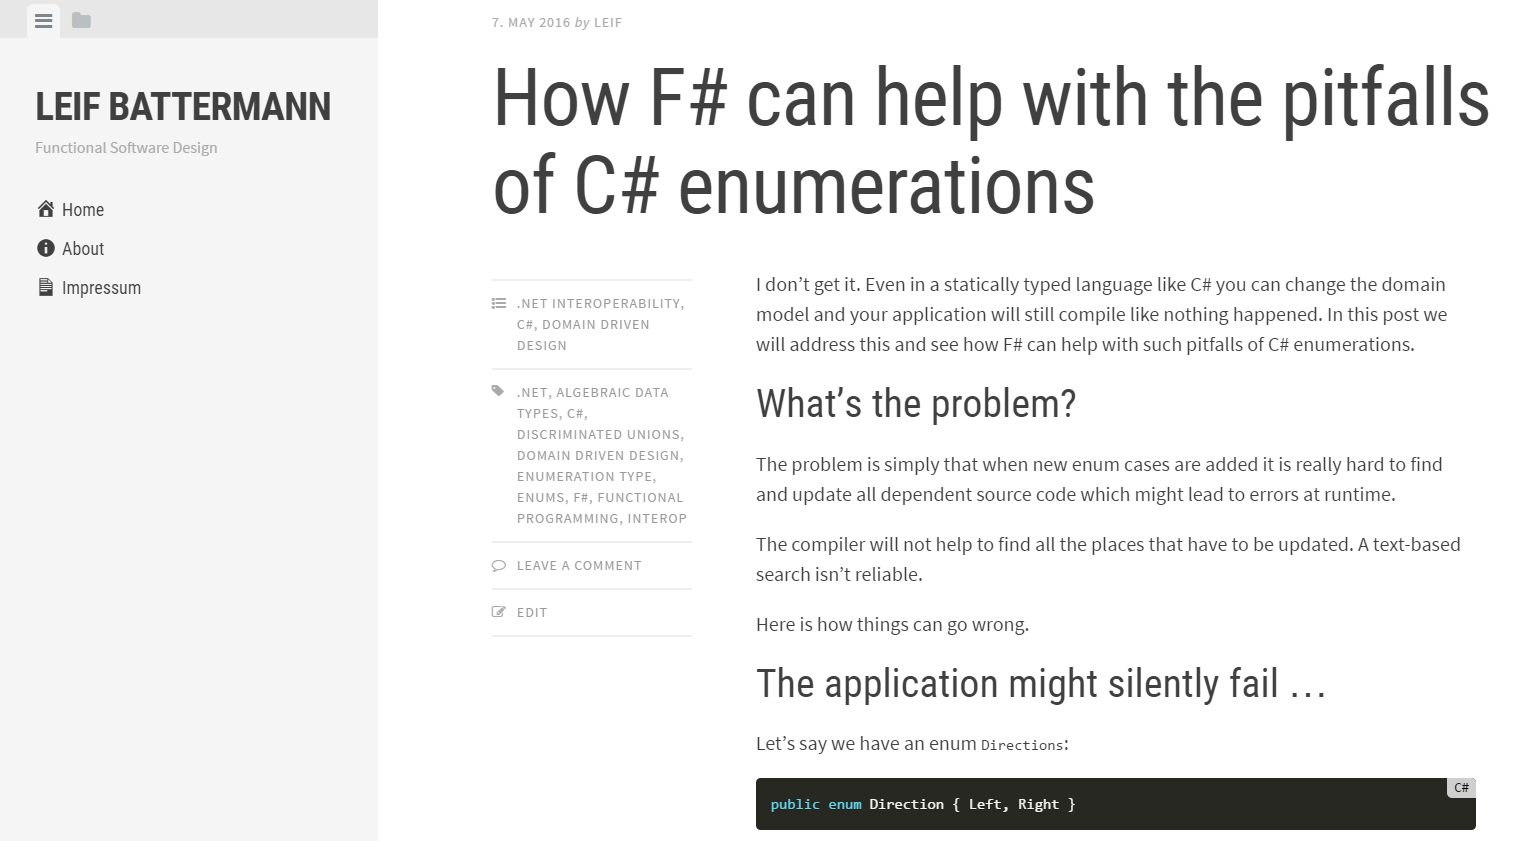 How F# can help with the pitfalls of C# enumerations